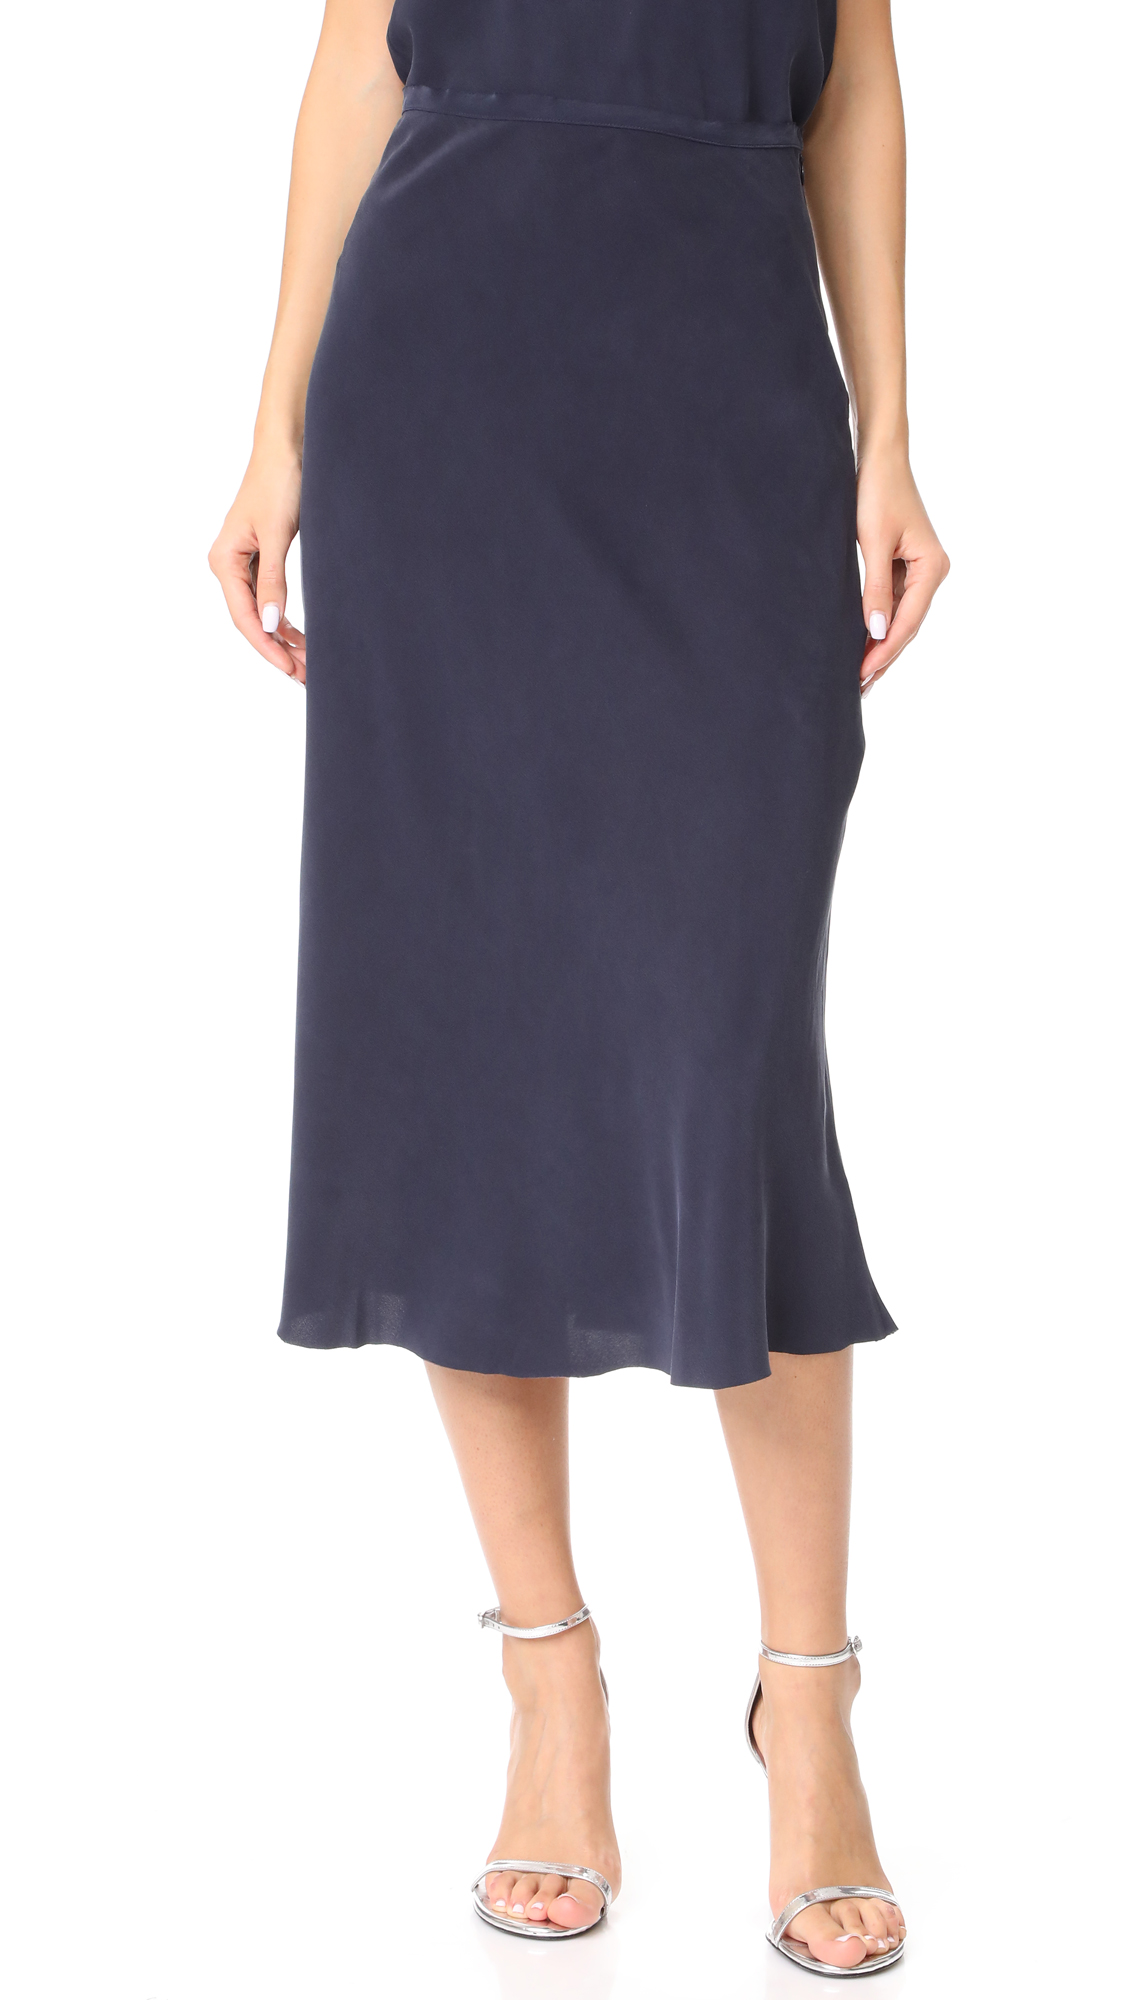 Bec & Bridge Classic Skirt - Ink